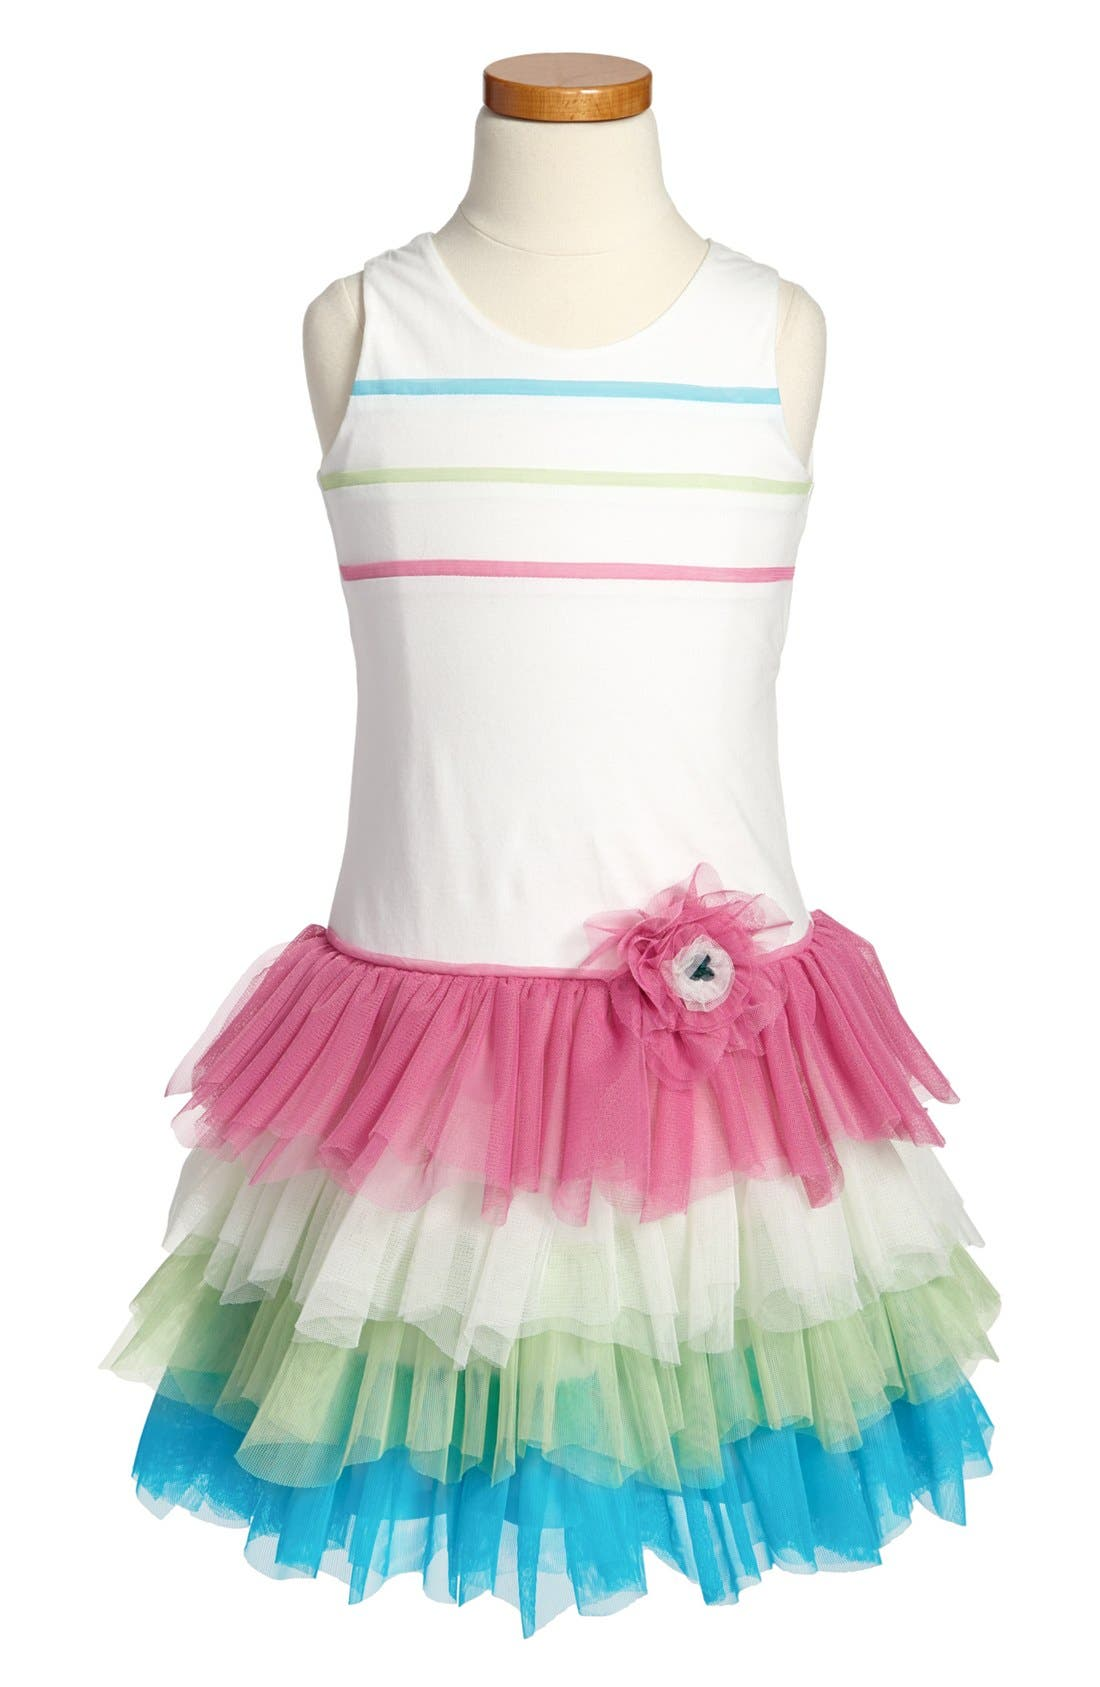 Main Image - Isobella & Chloe 'Tutti Frutti' Sleeveless Dress (Little Girls & Big Girls)